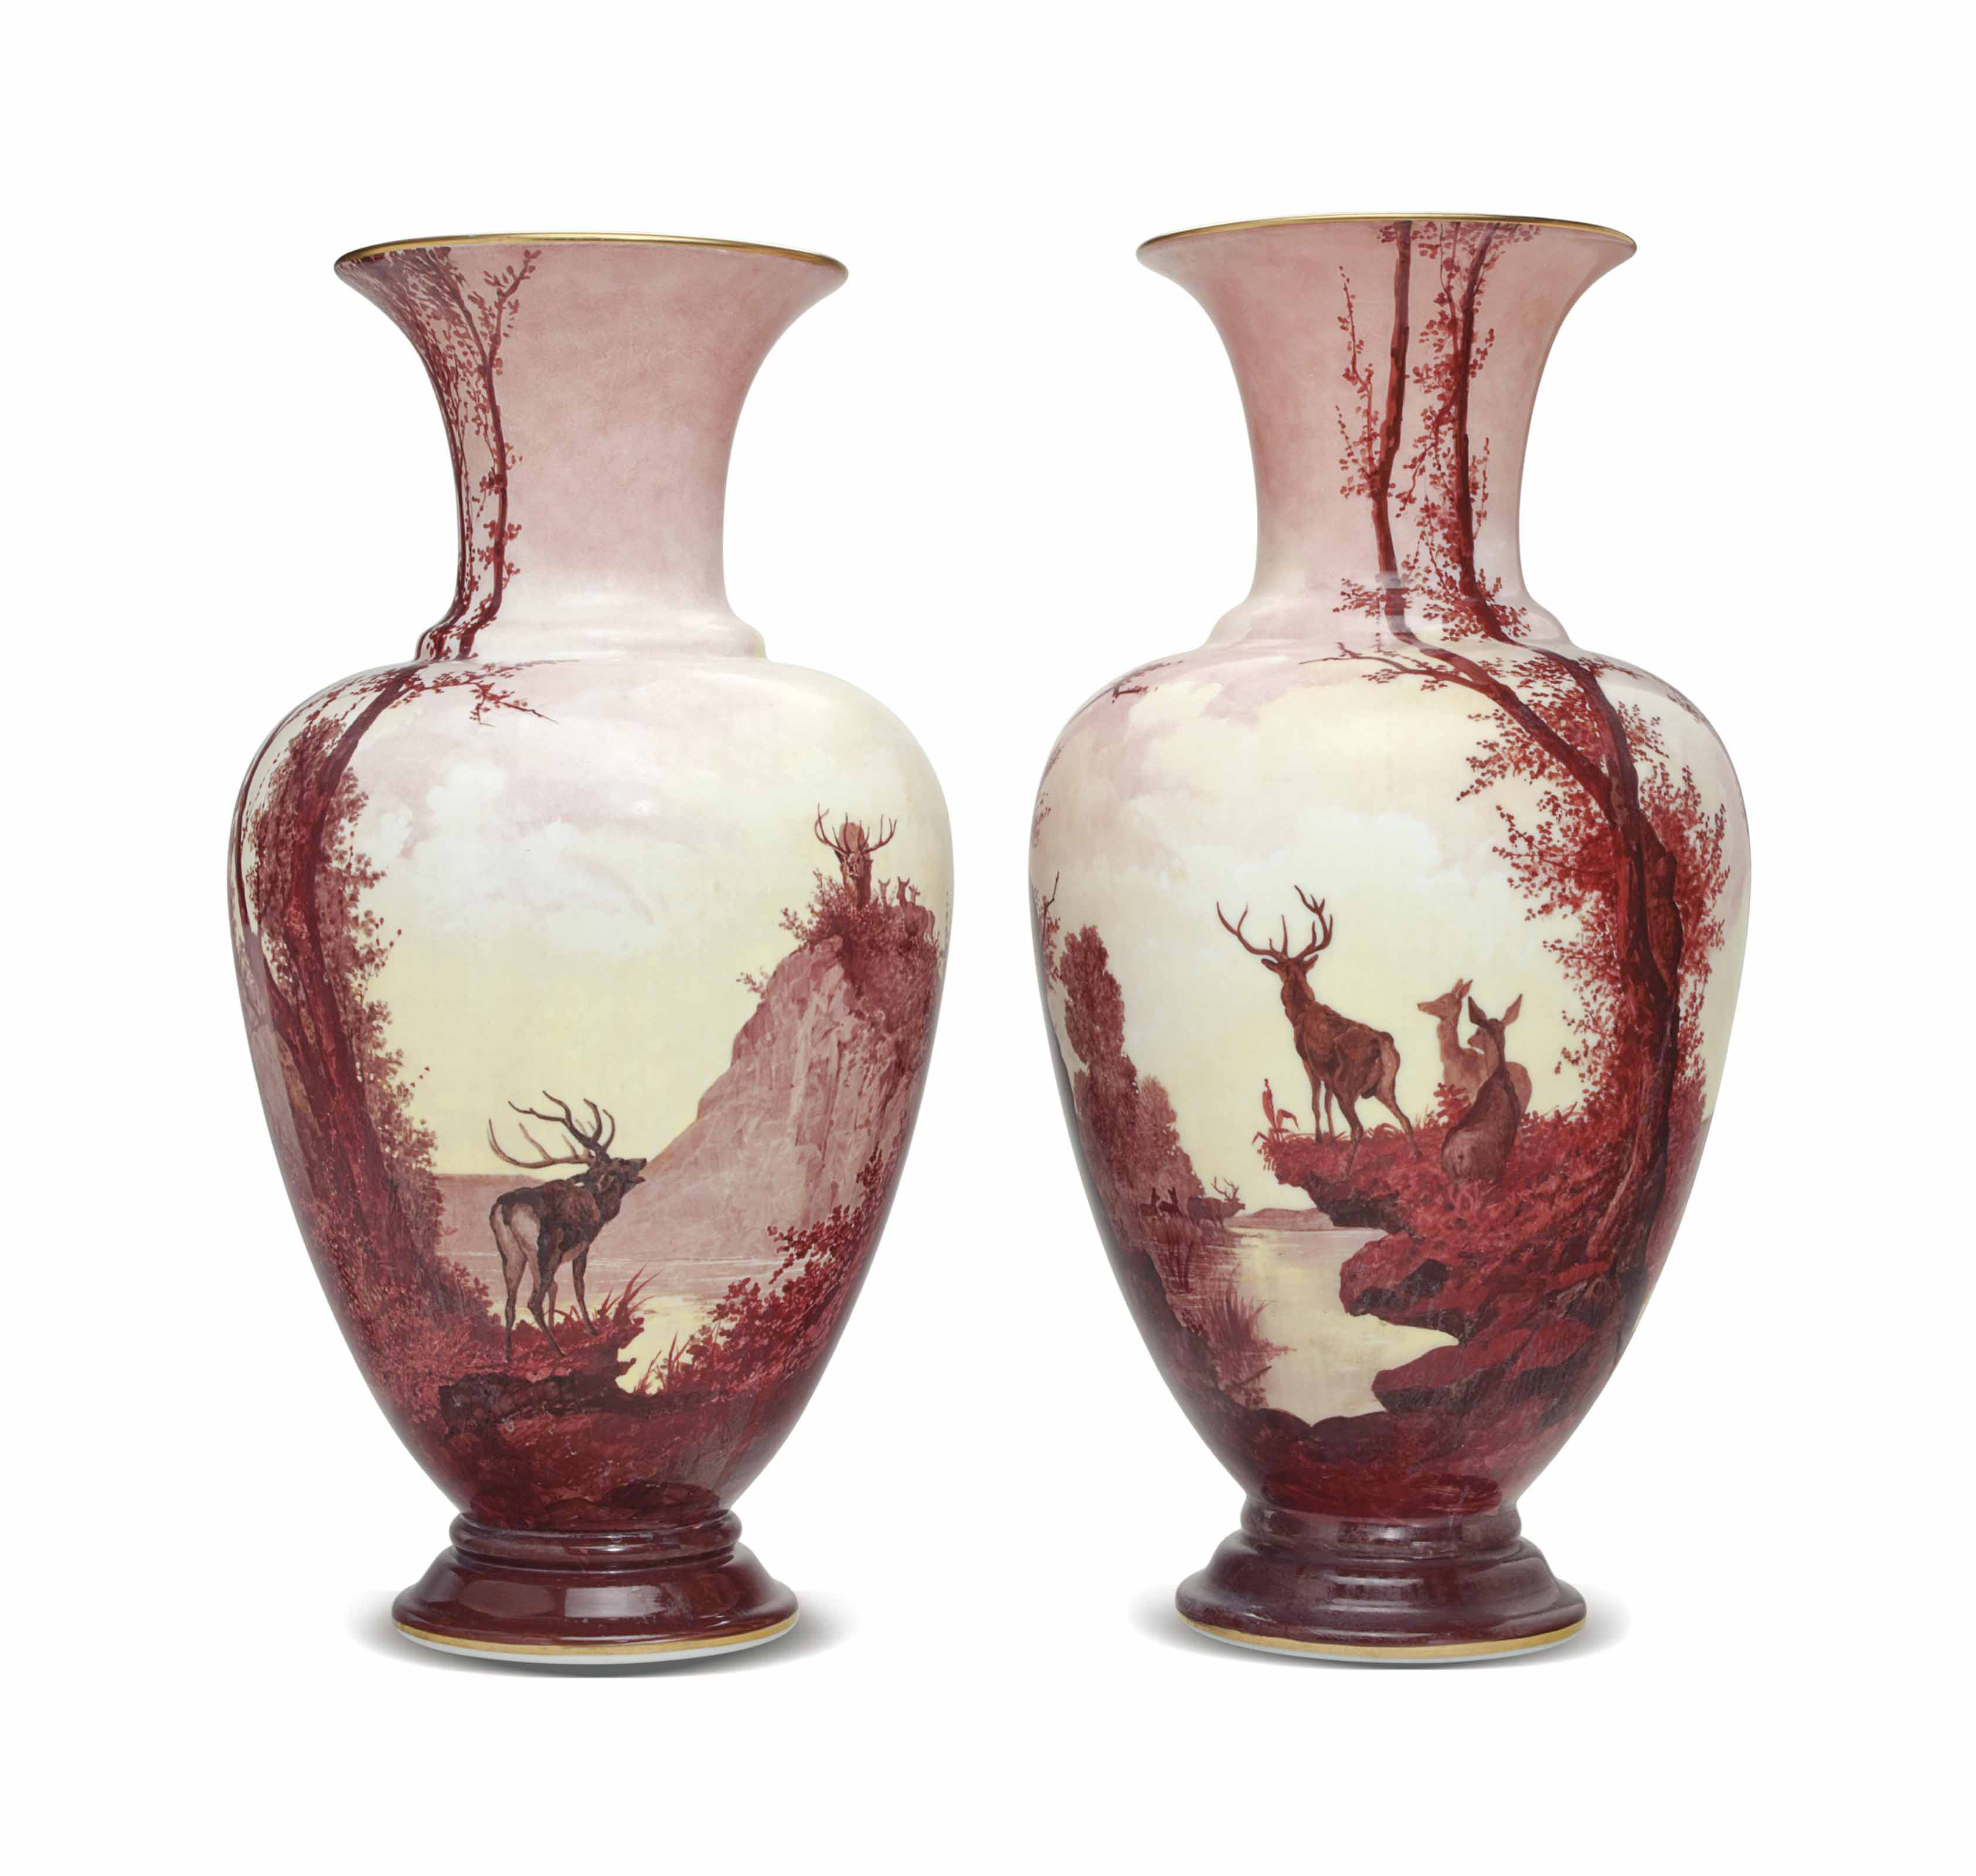 A PAIR OF BACCARAT OPALINE GLASS VASES